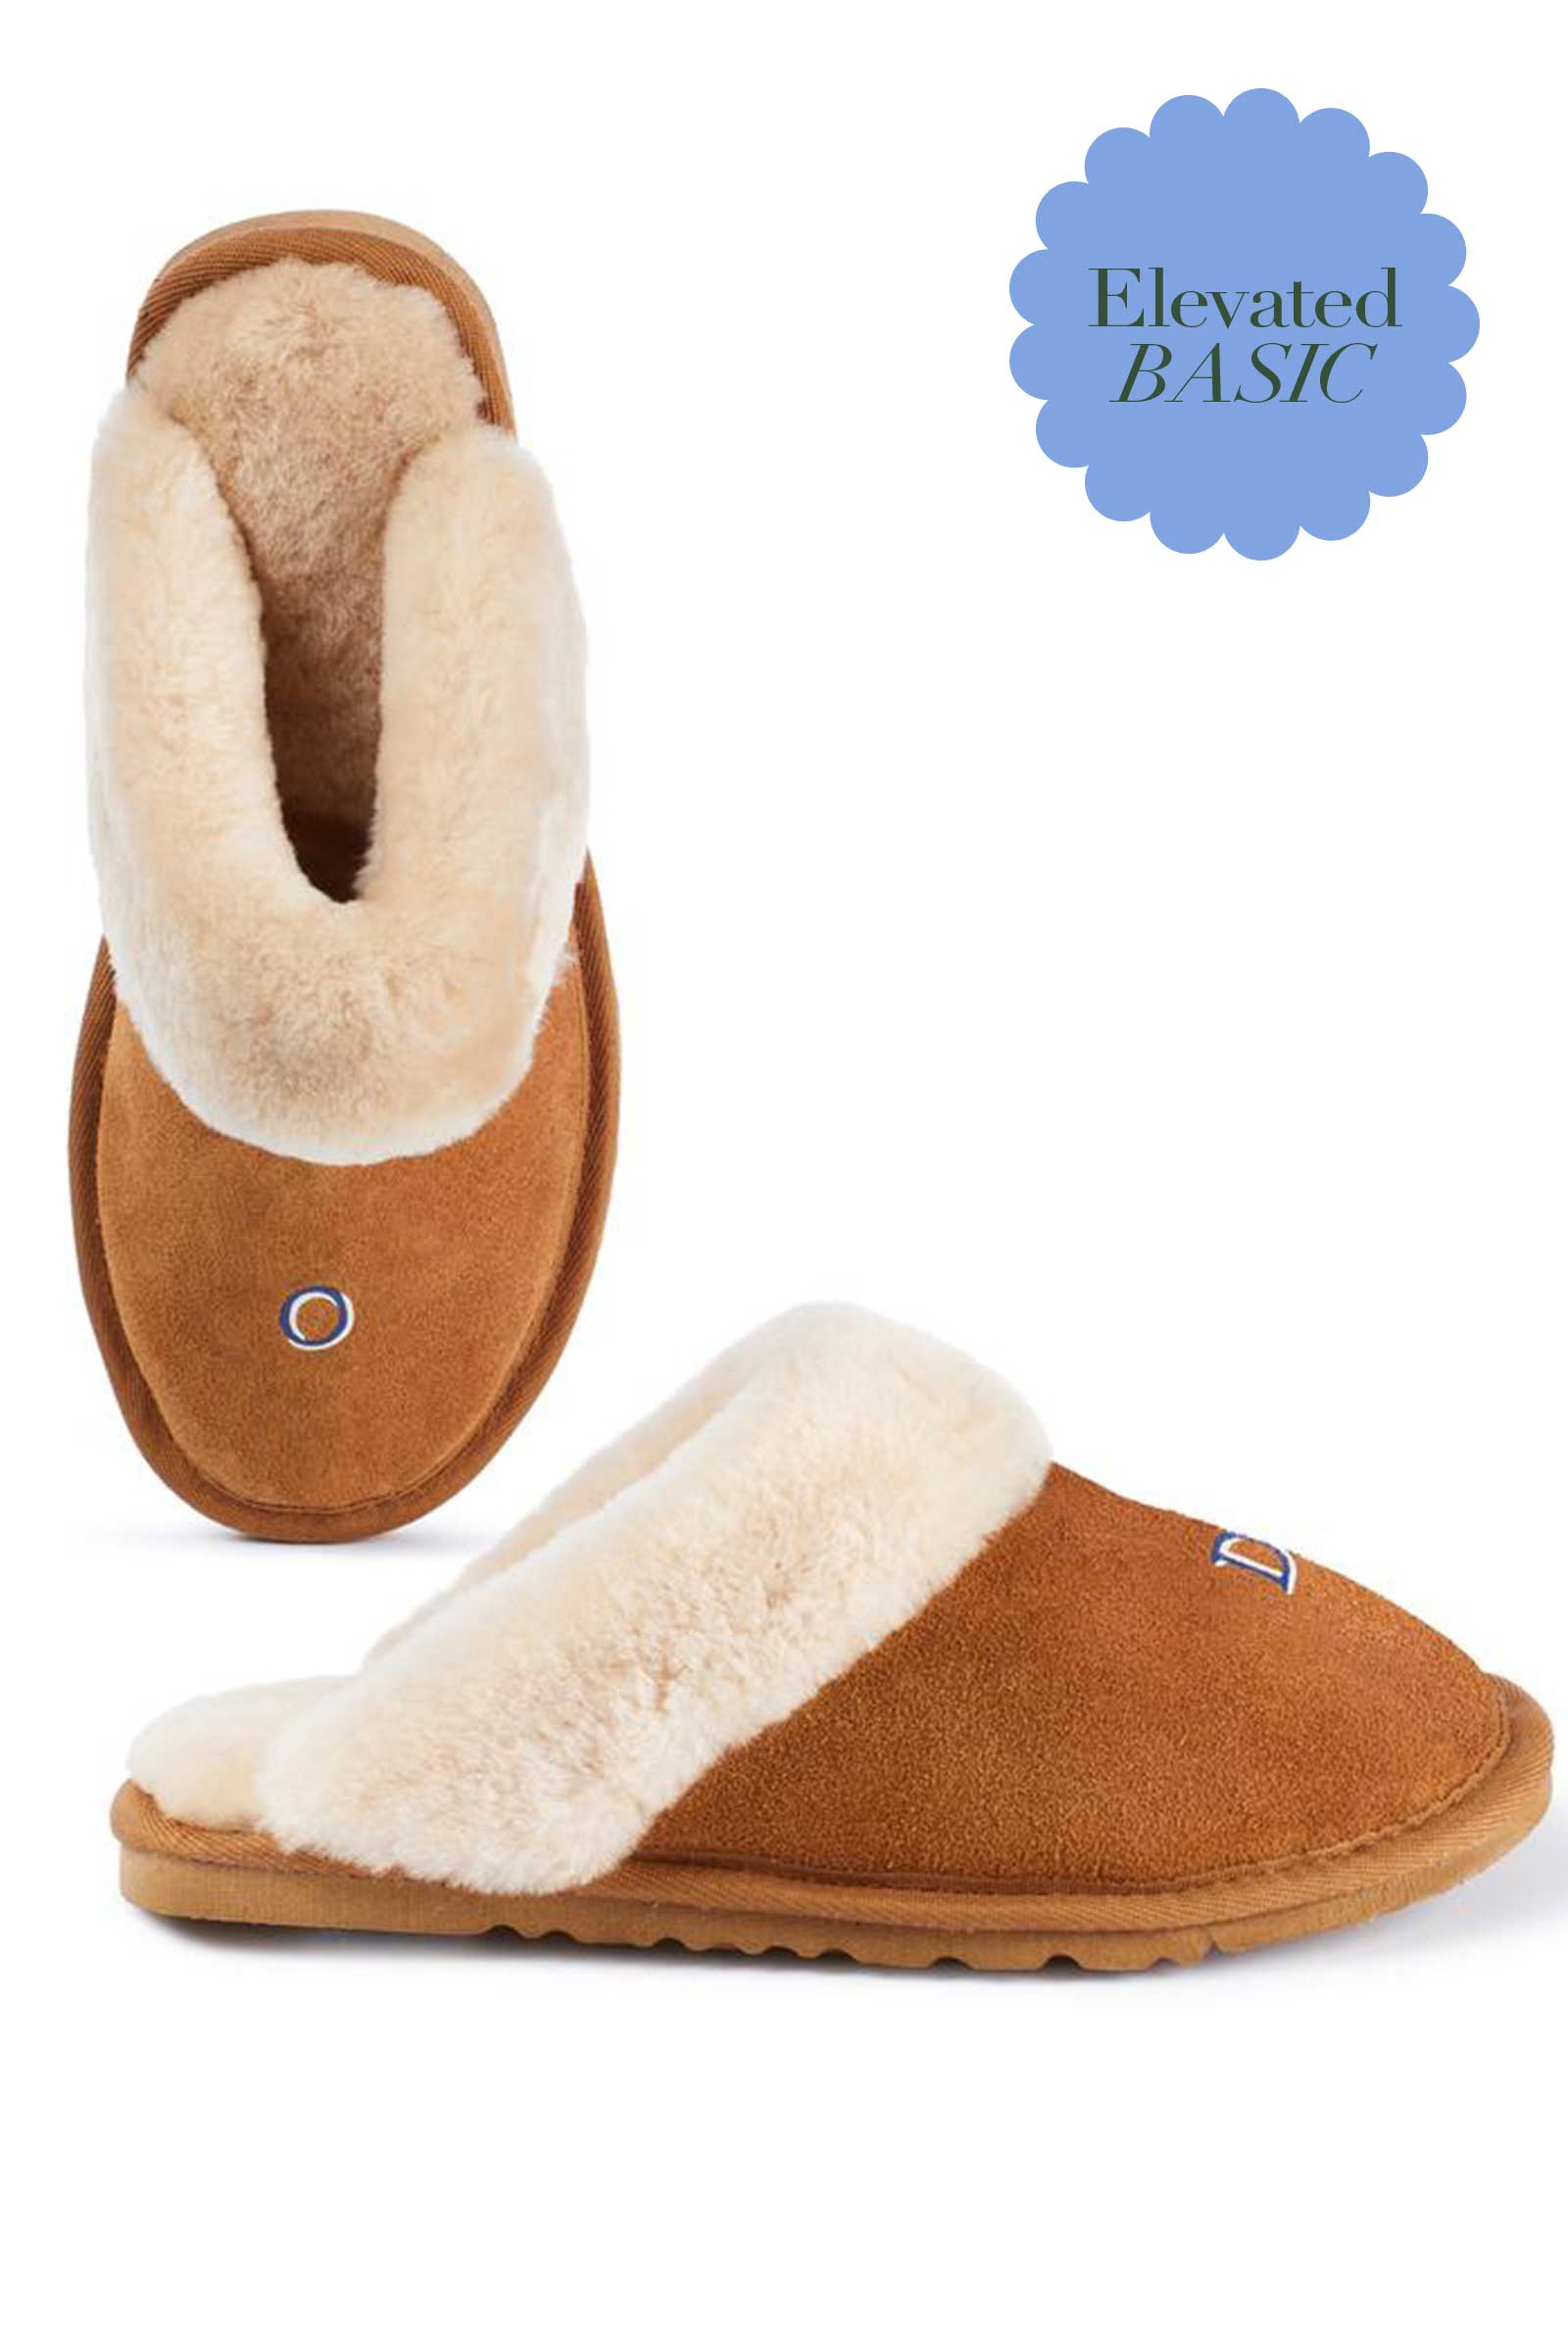 Monogram Women's Slippers